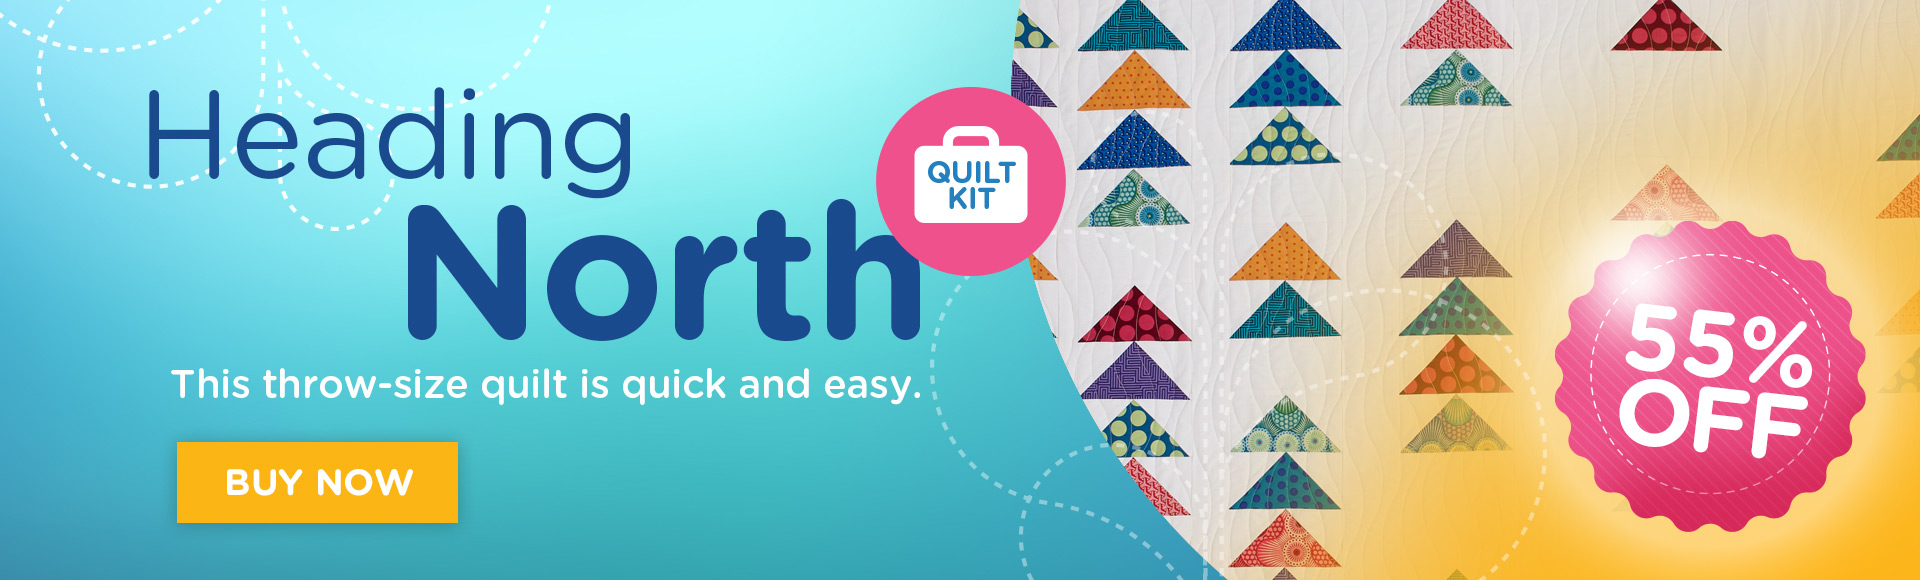 Heading North Quilt Kit 55 percent off